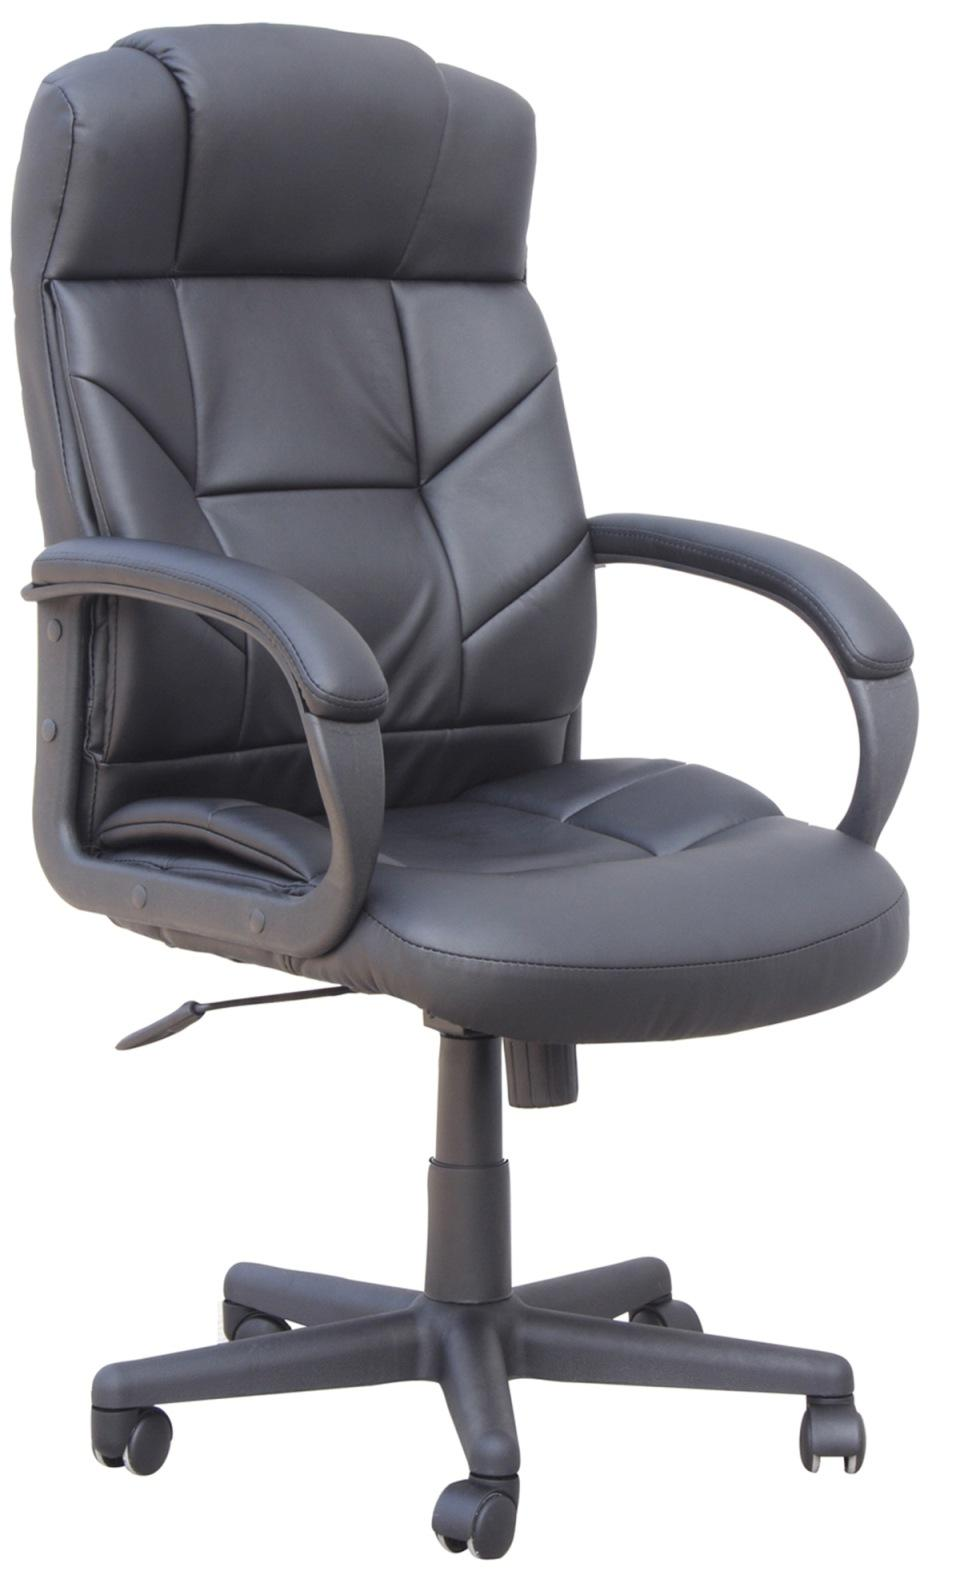 Classic Executive Chair With Arms Office Furniture Store